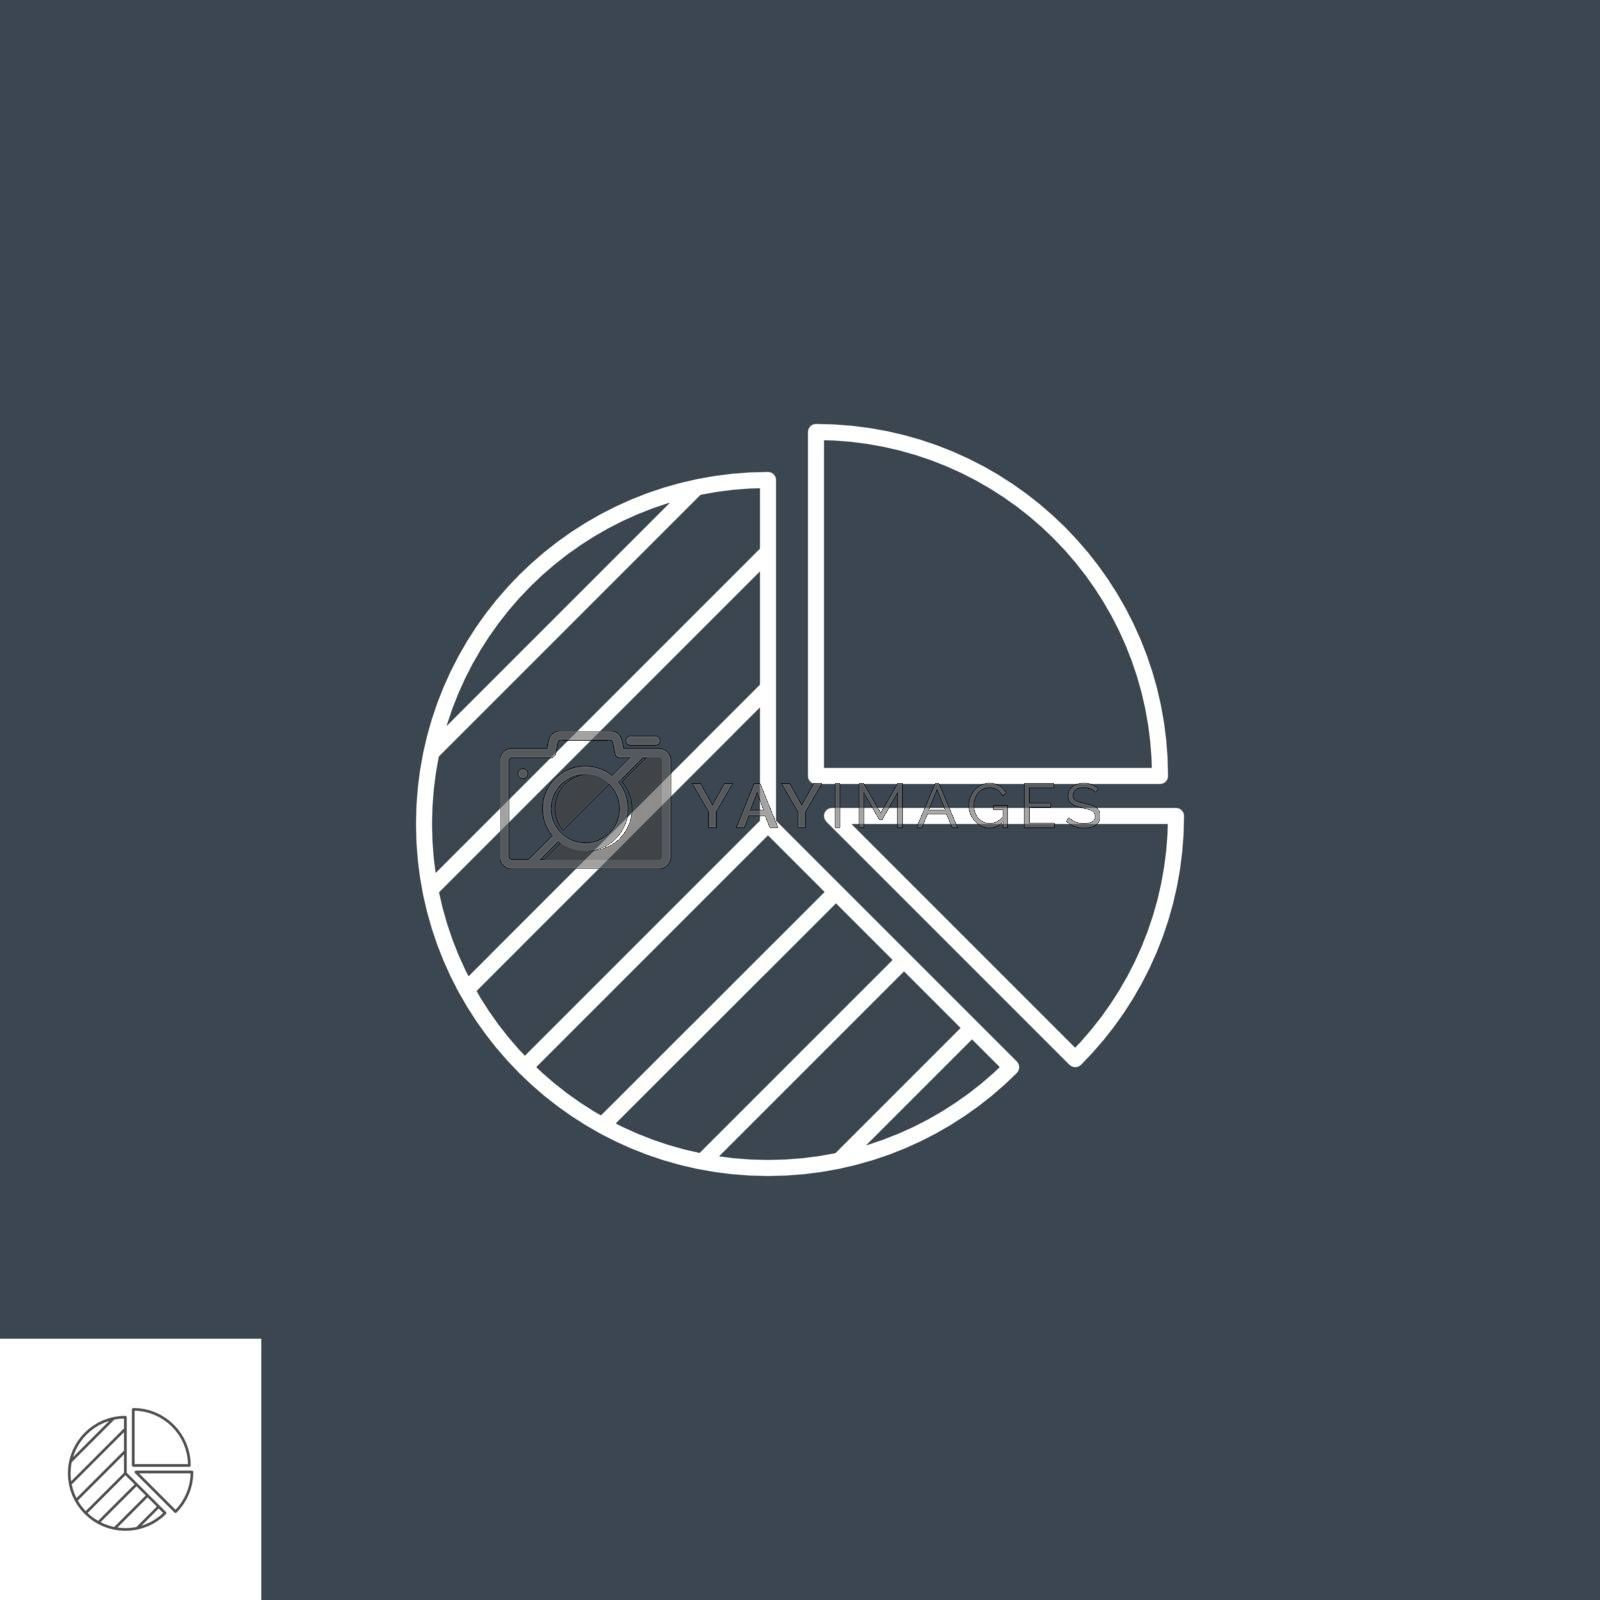 Pie Chart Related Vector Line Icon. Isolated on Black Background. Editable Stroke.